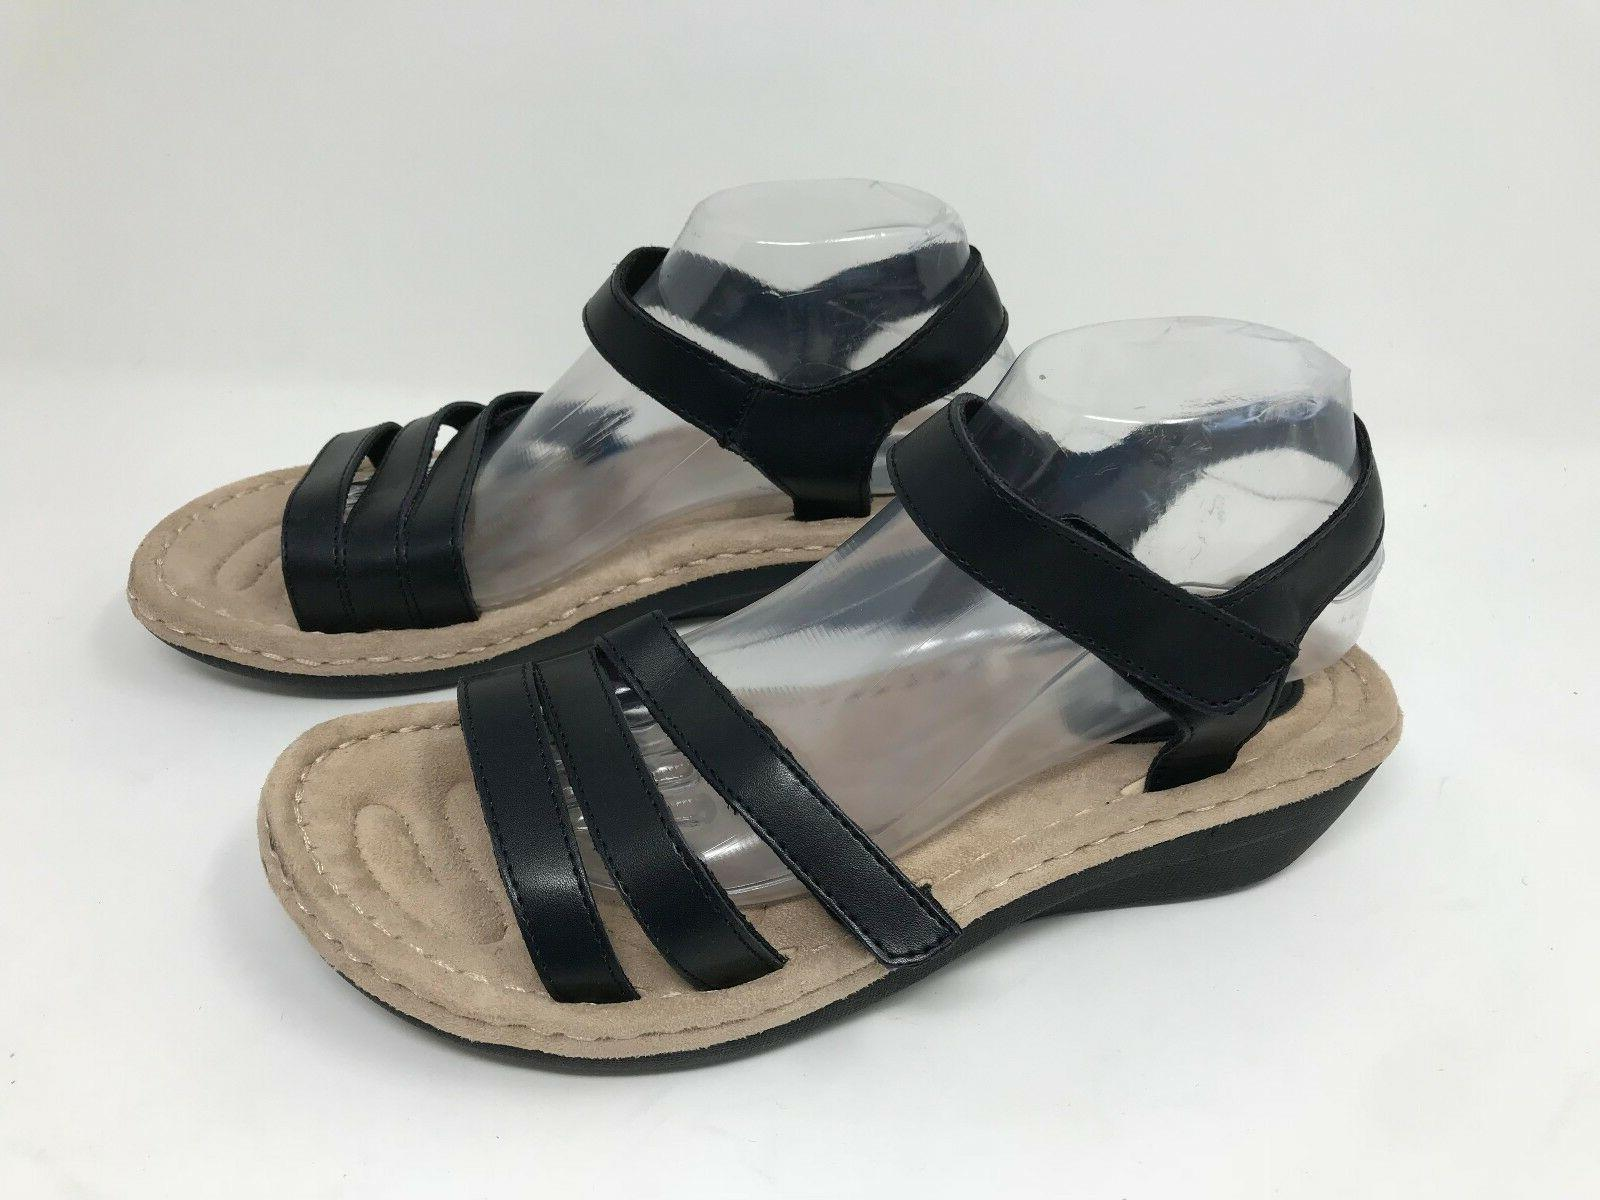 new women s 52197 ritza wedge sandal